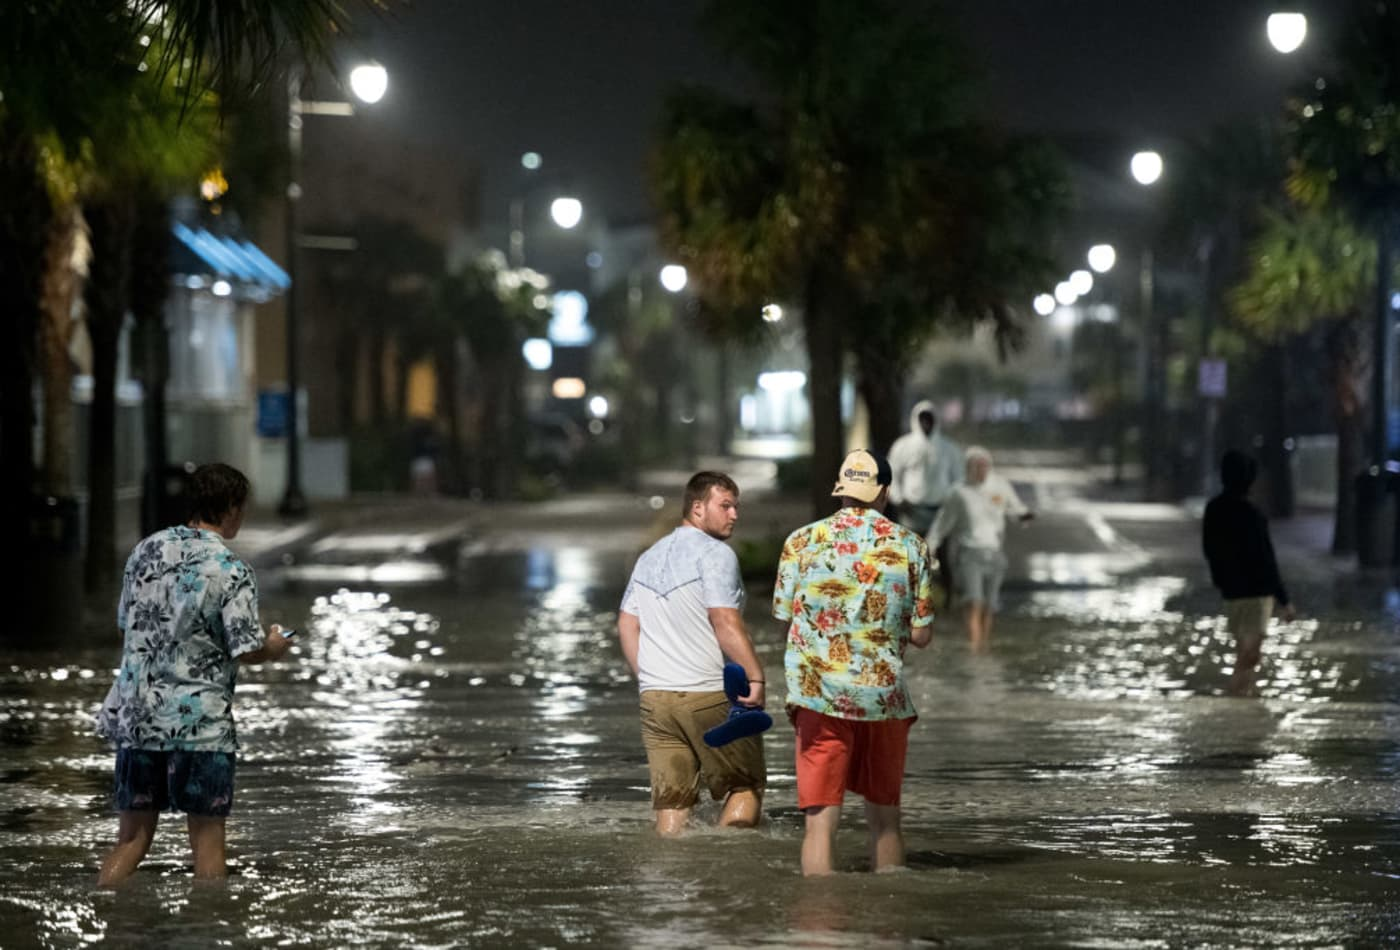 Atlantic hurricane season on pace to be one of the worst in recorded history